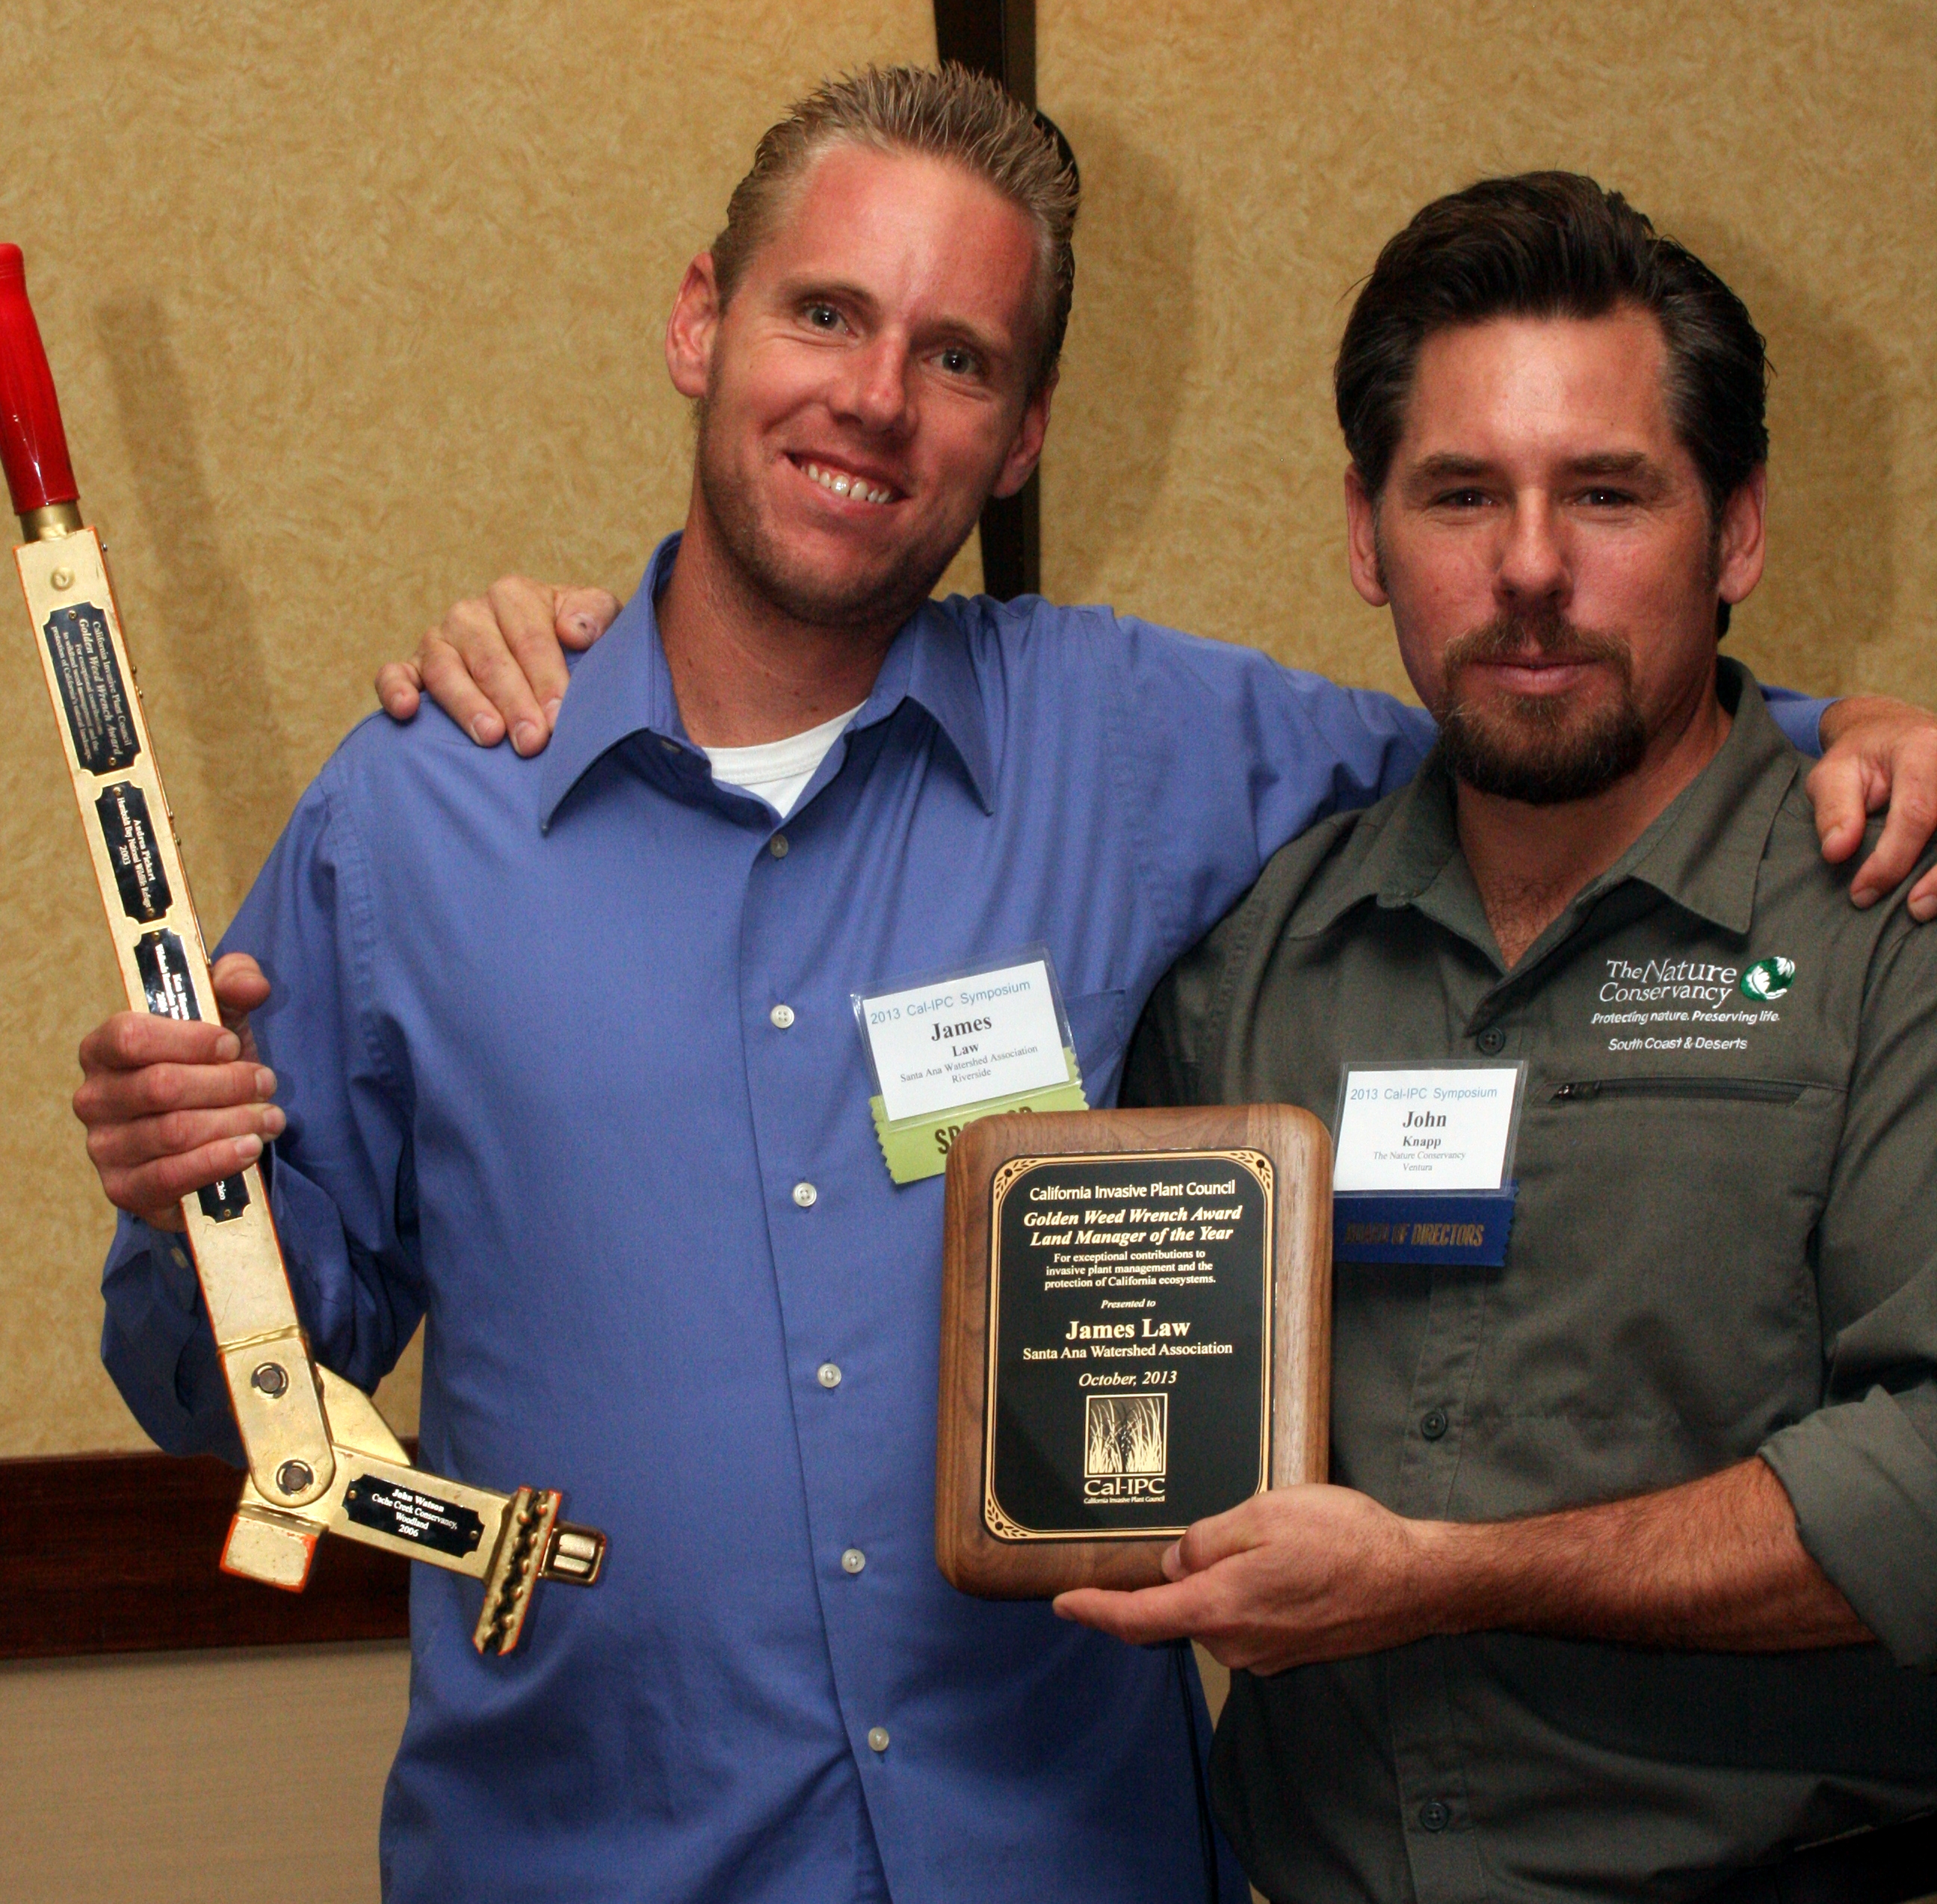 James Law, 2014 recipients of Golden Weed Wrench. Photo: Bob Case